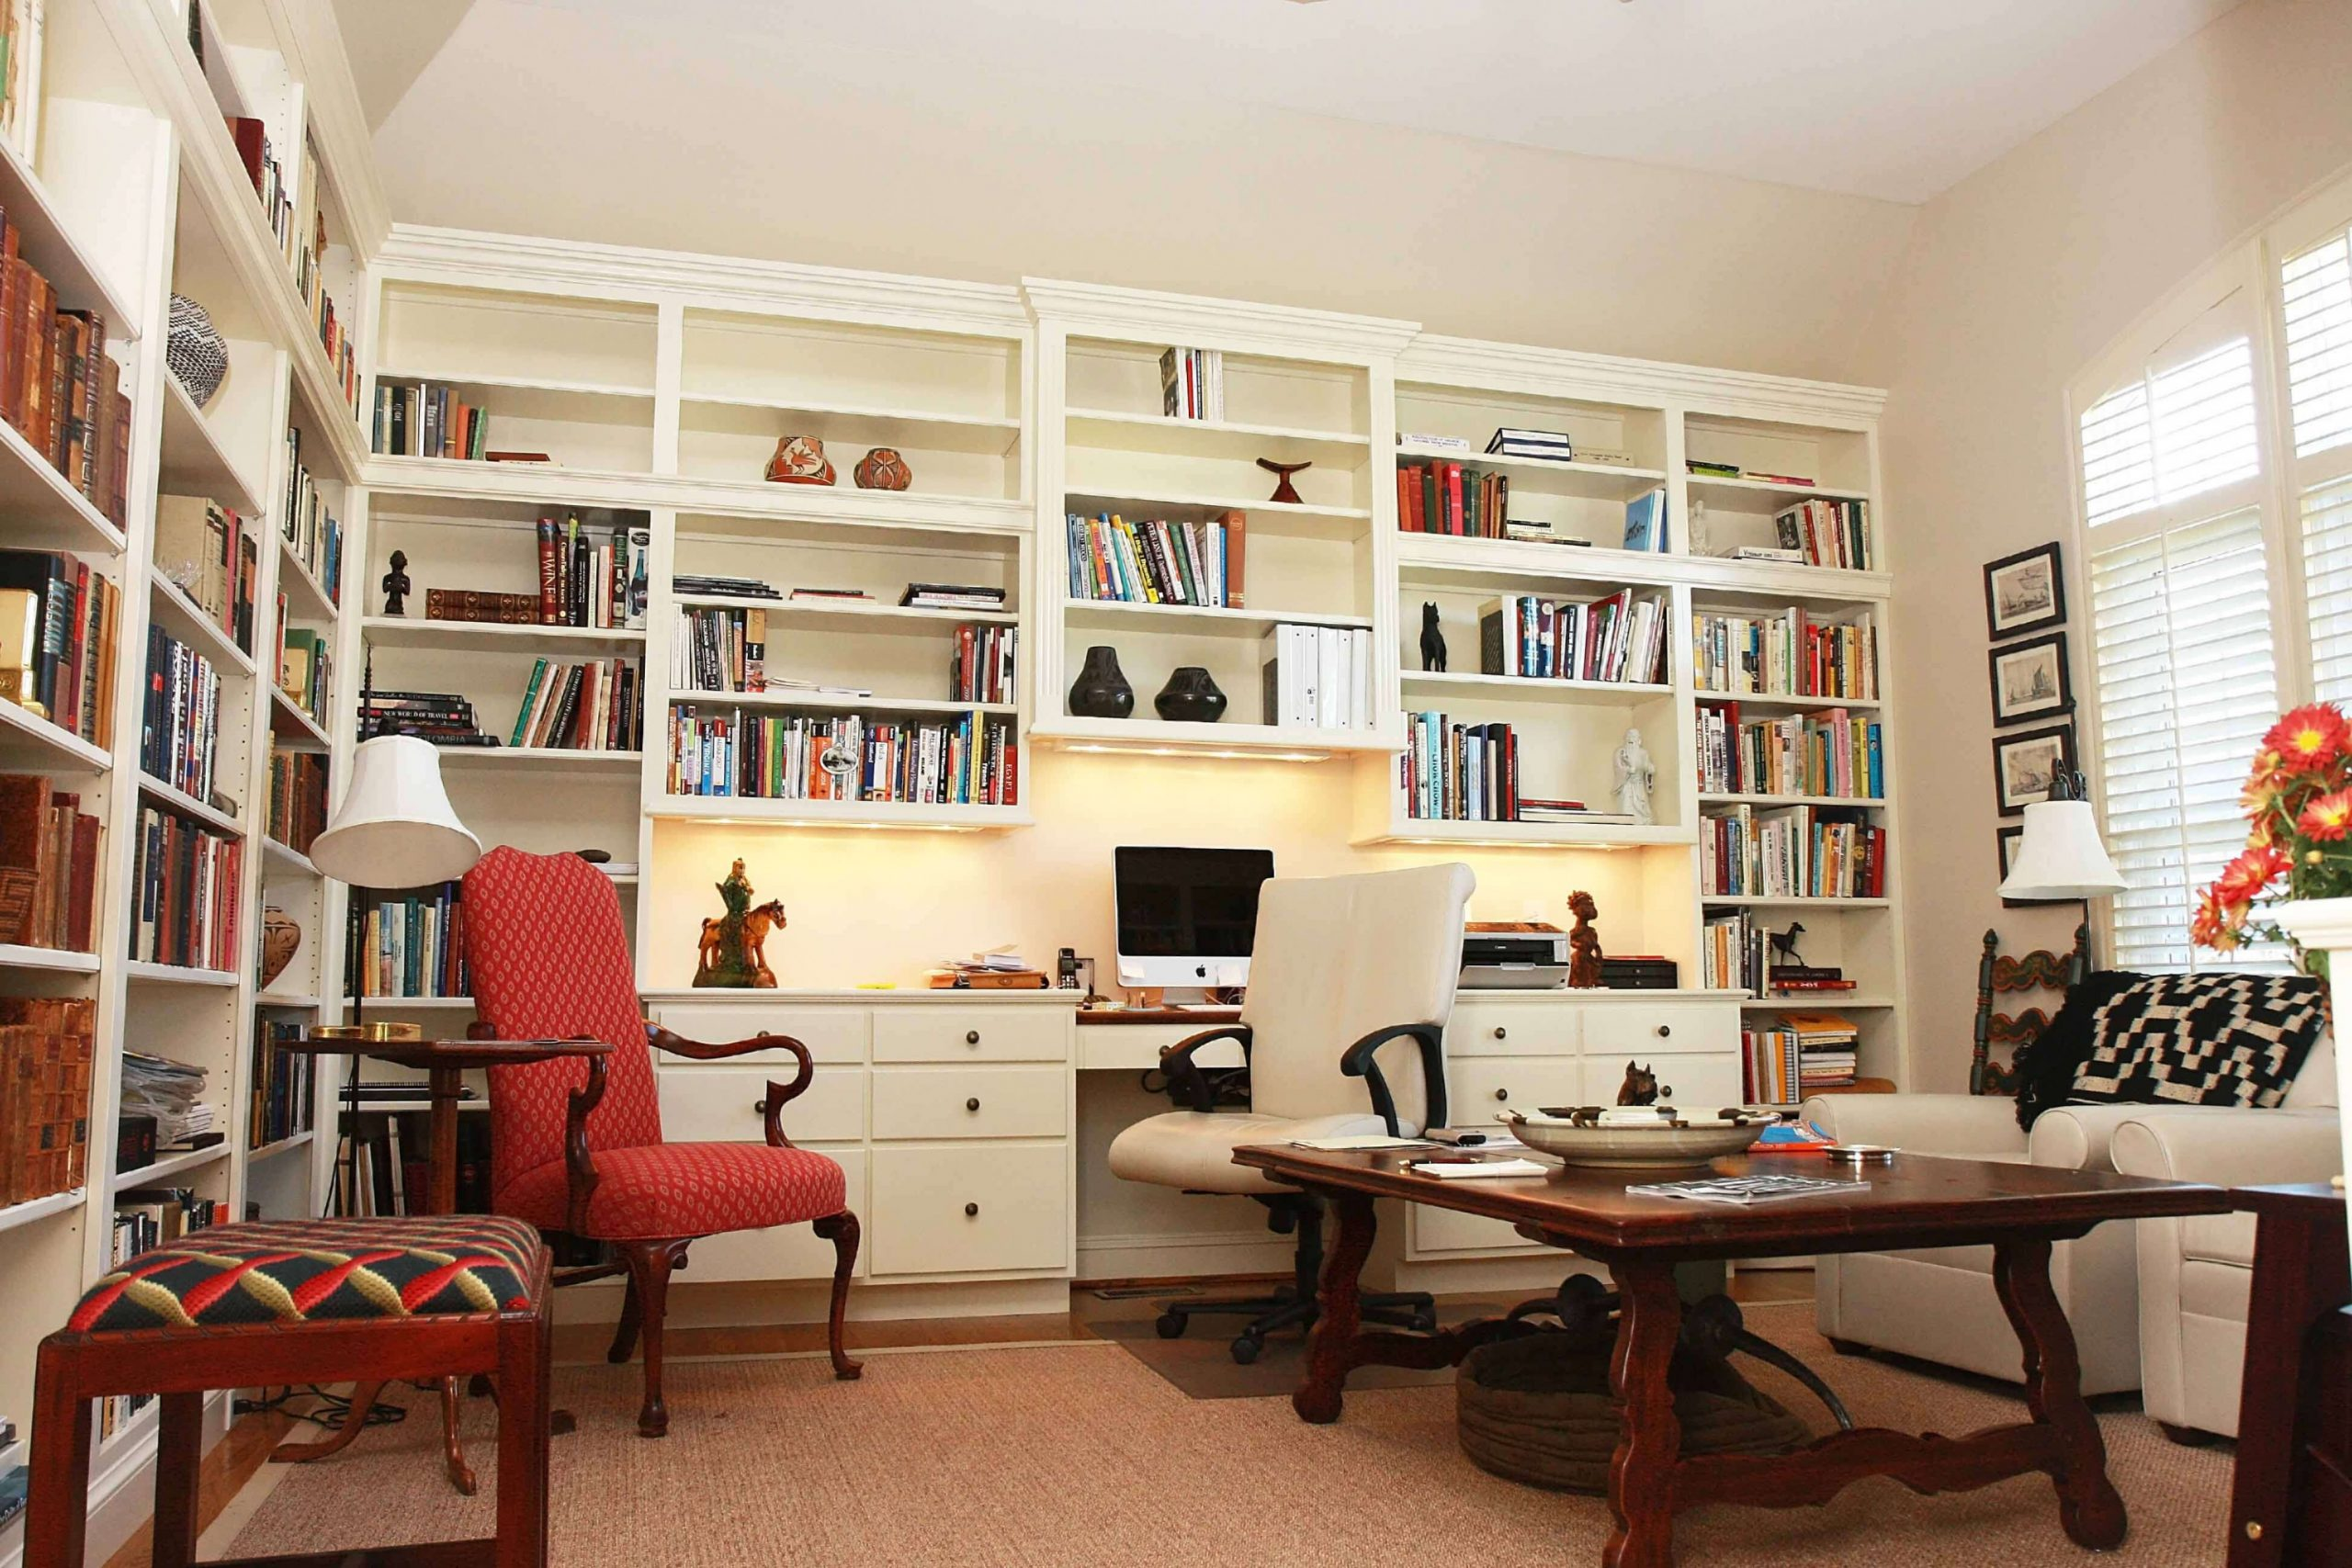 10 Smart Unfinished Basement Ideas on a Budget  You Should Try! - Home Office Ideas For Basement